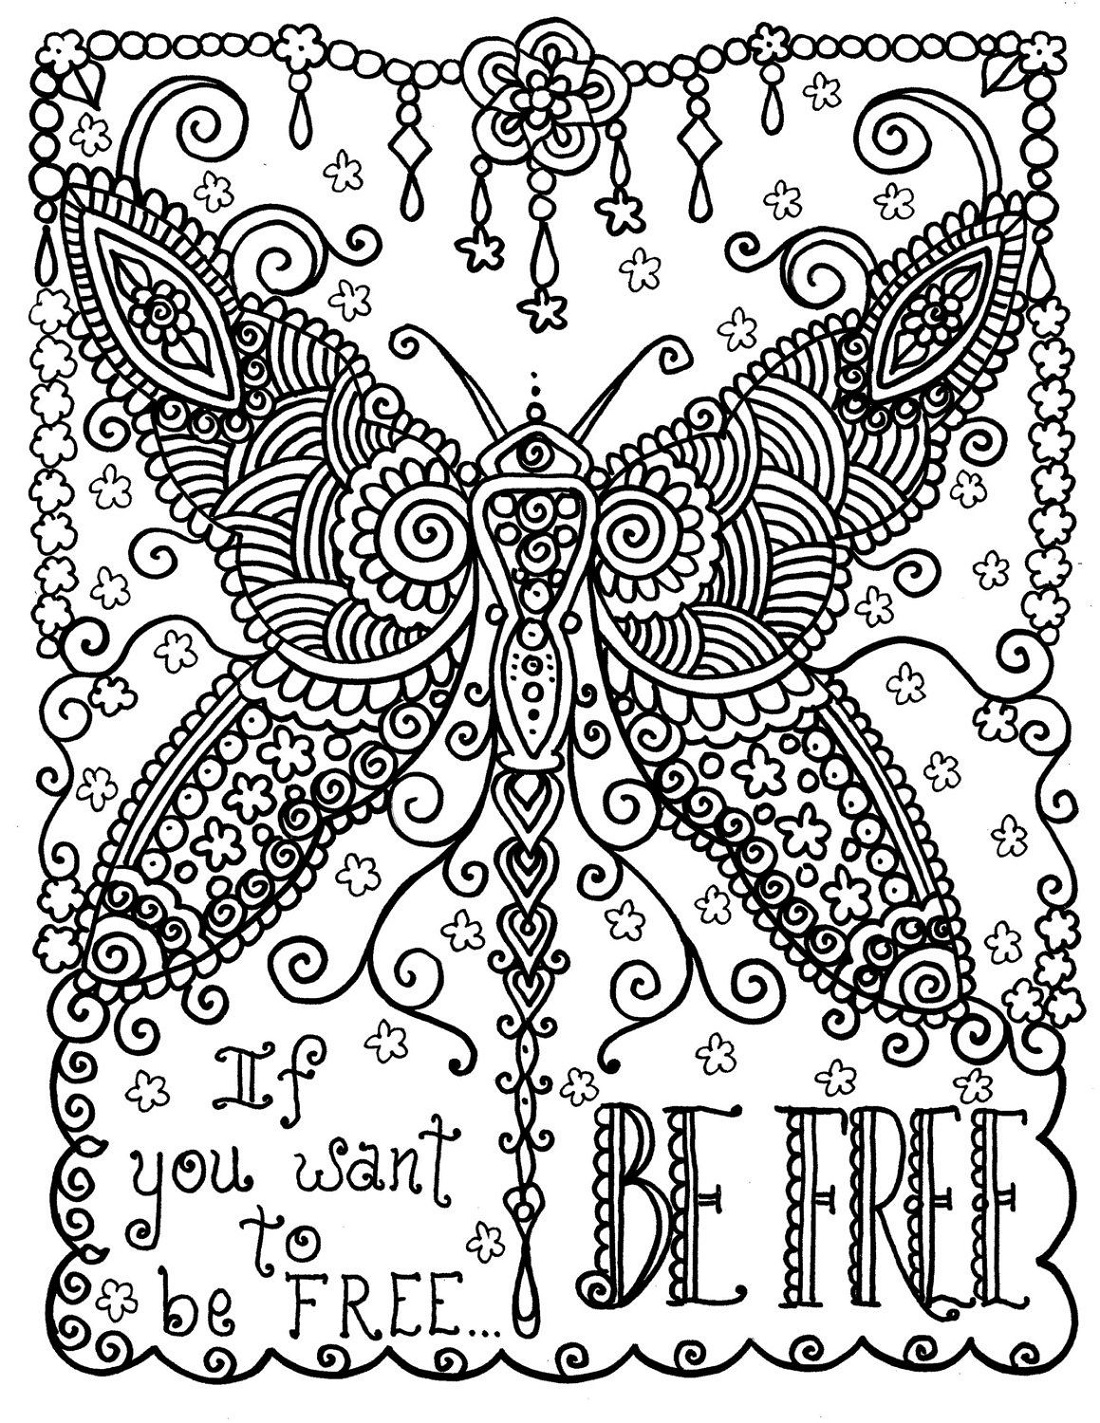 Free Online Coloring Pages For Adults 101 Coloring